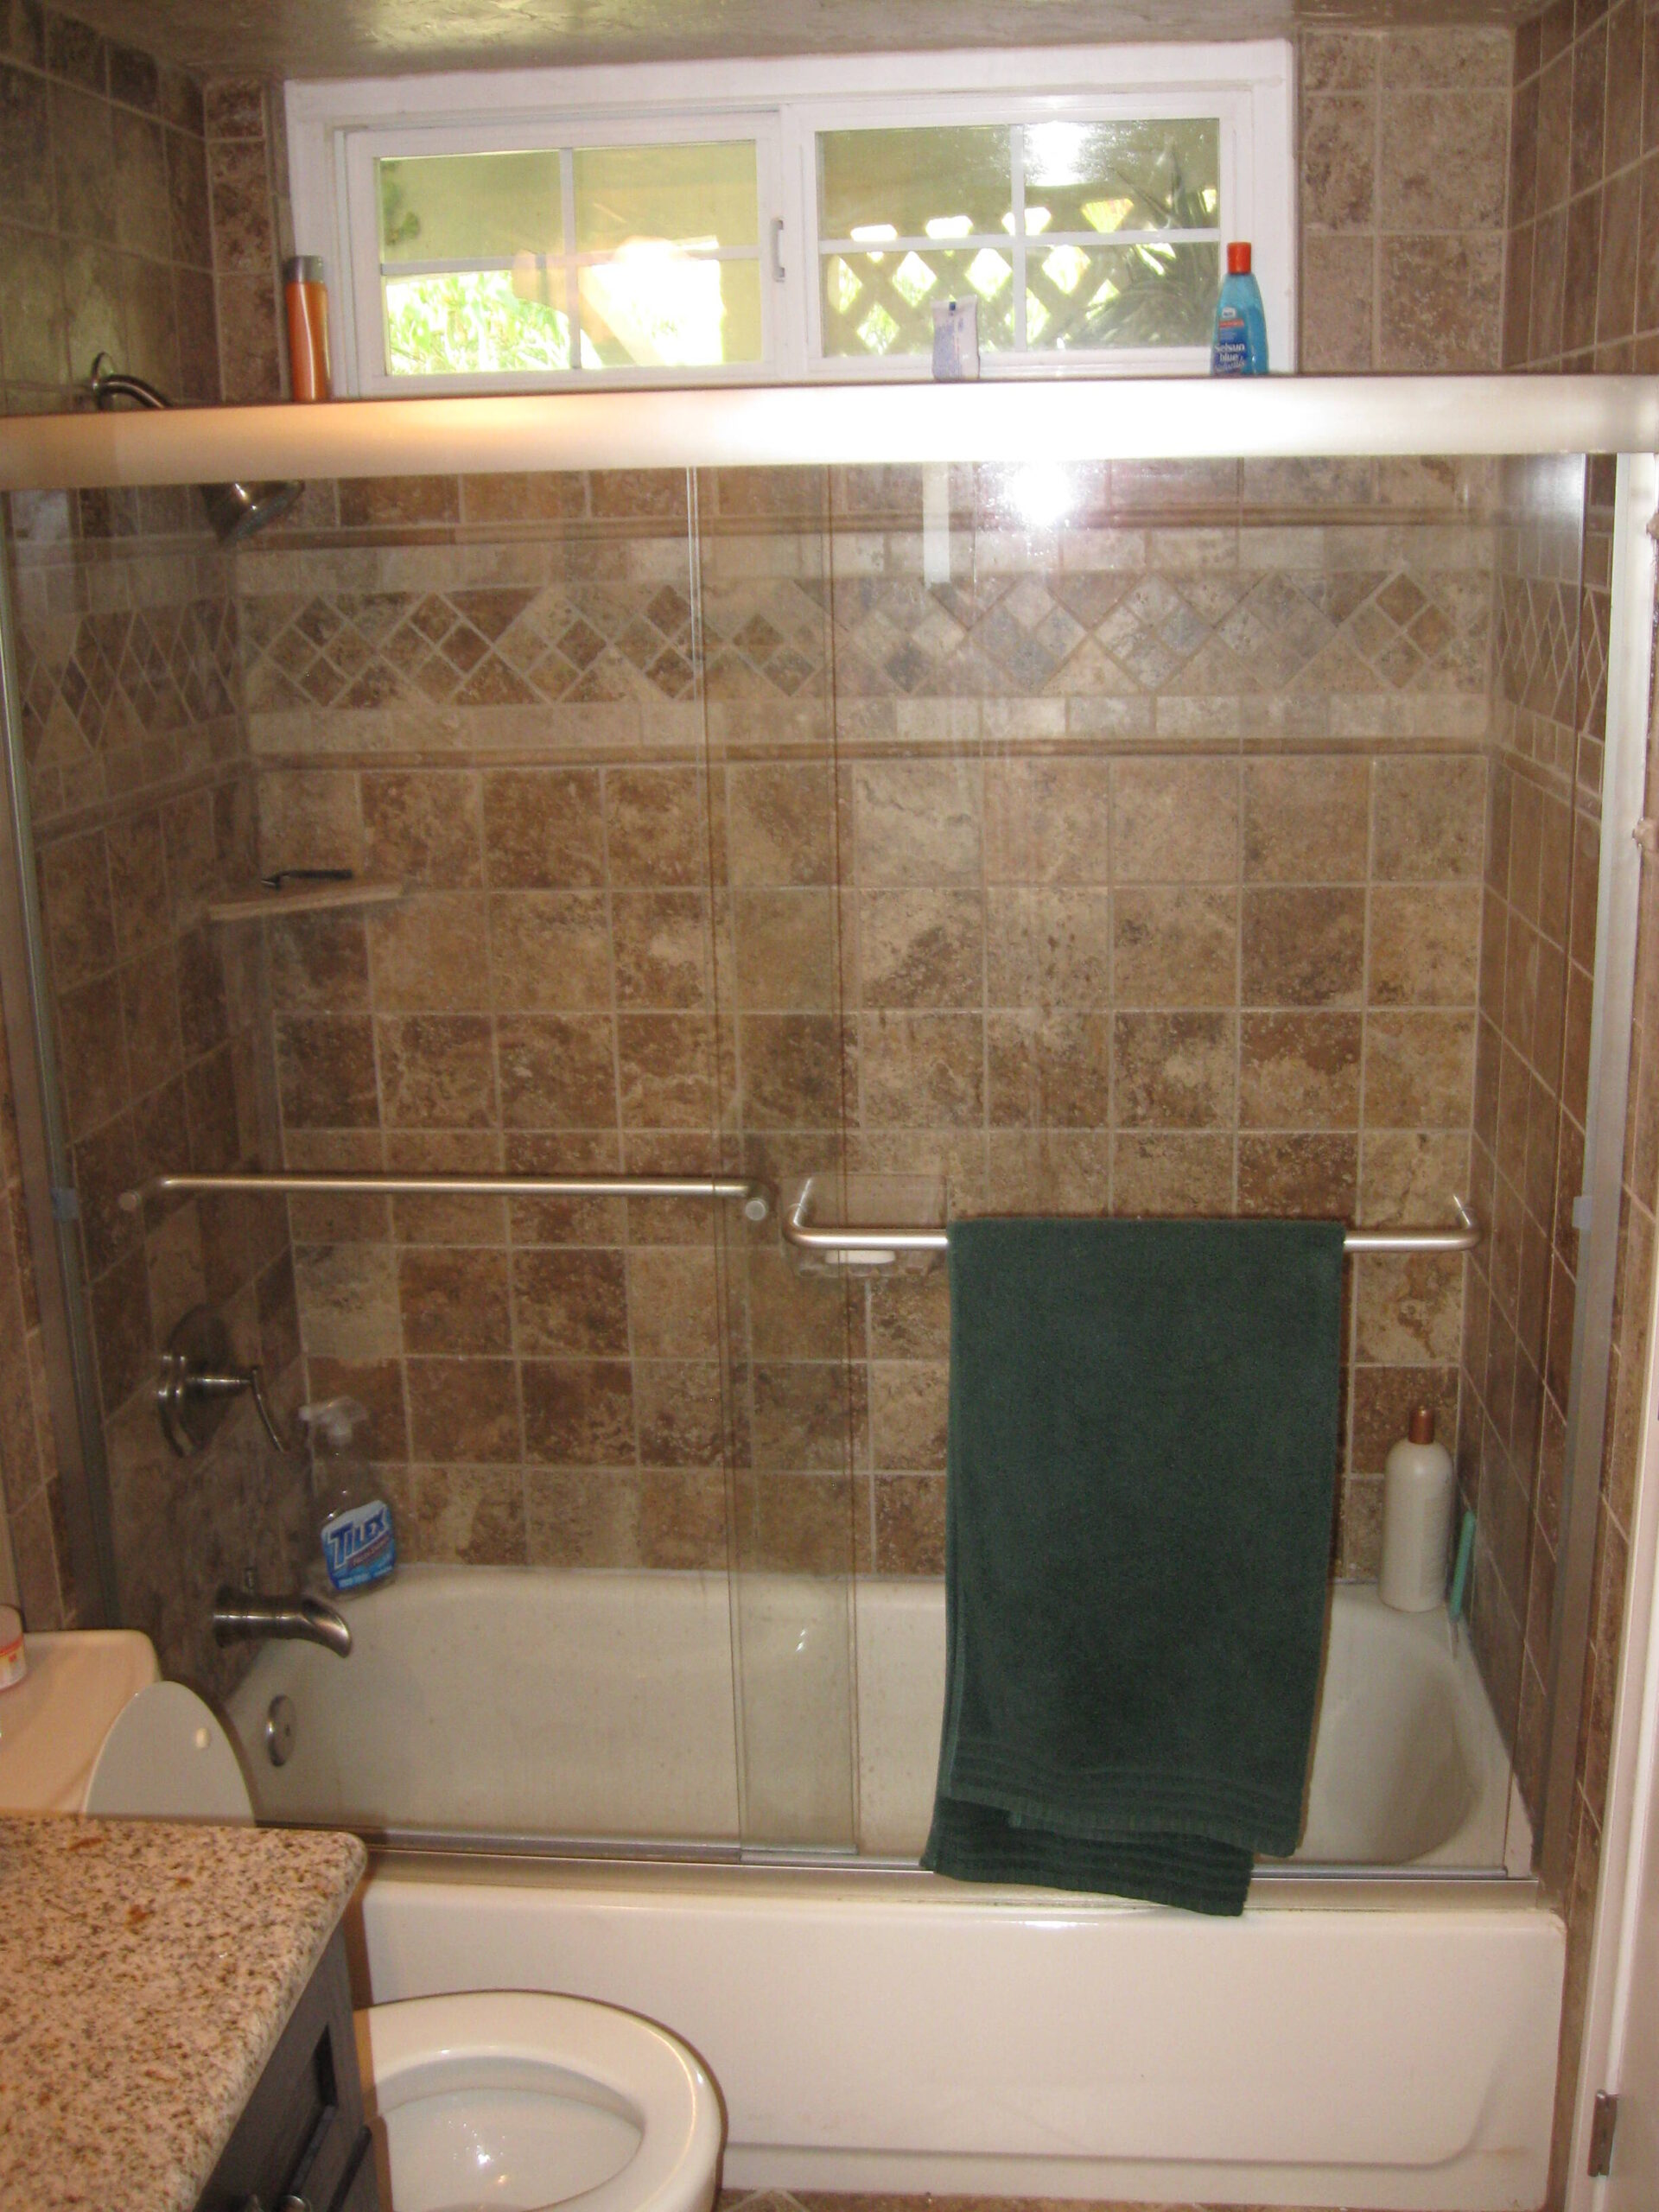 Bathtub Installation Bathtub Plumbing Repair  Tub Door